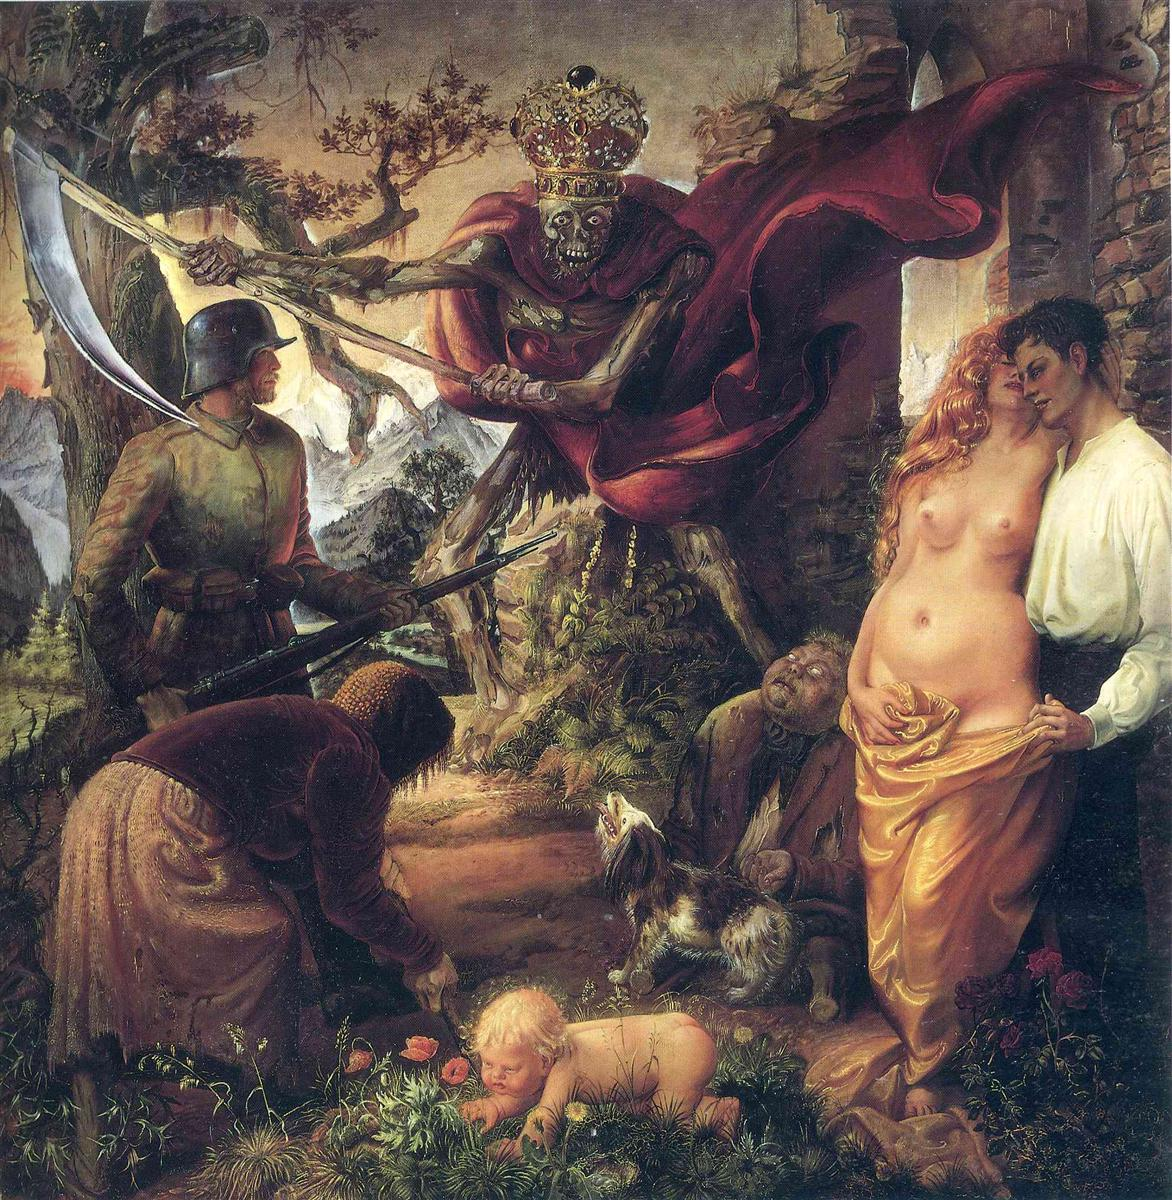 http://uploads2.wikipaintings.org/images/otto-dix/triumph-of-death.jpg!HD.jpg